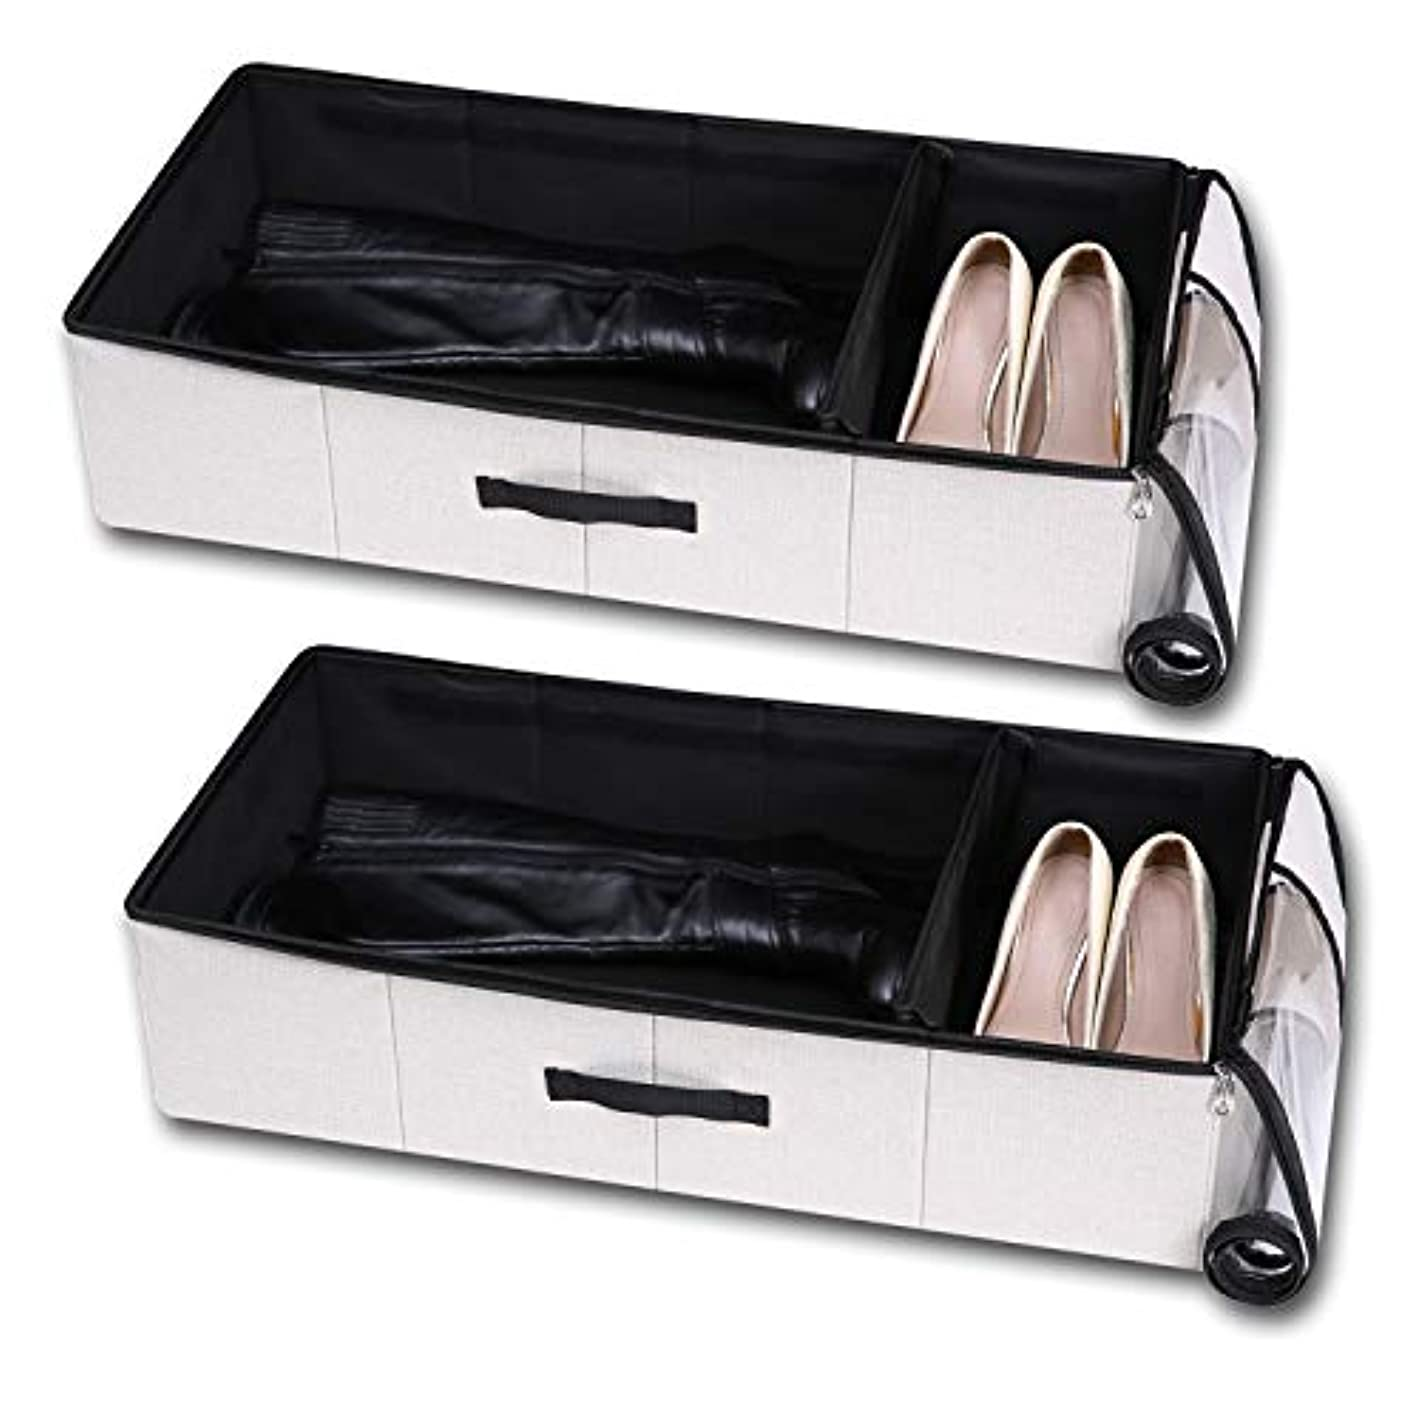 VEAMOR Under The Bed Storage Boxes with Zippered Lid Removable Cardboad, Blankets Storage Box, Dust Proof Organizer Basket for Duvets (Linen 2pcs)